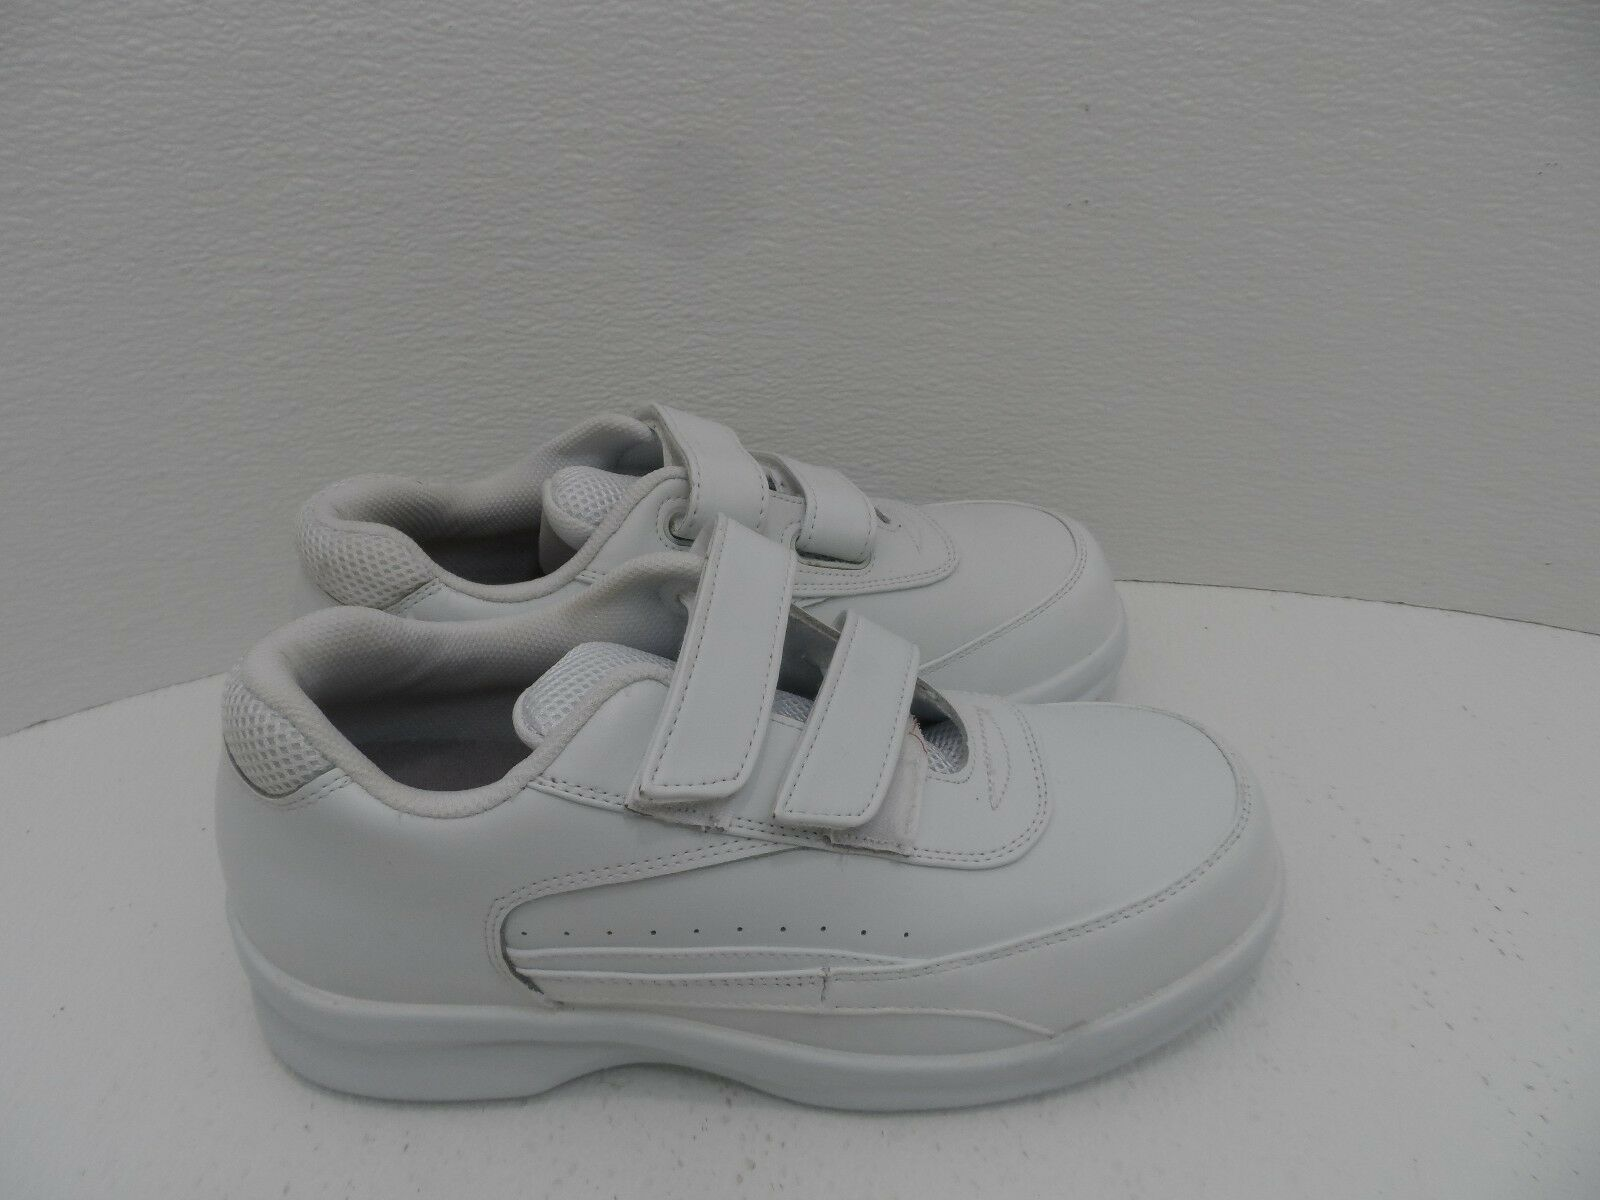 Apex Orig. Orthopedic shoes Casual Athletic White Tennis shoes - Women Size 10